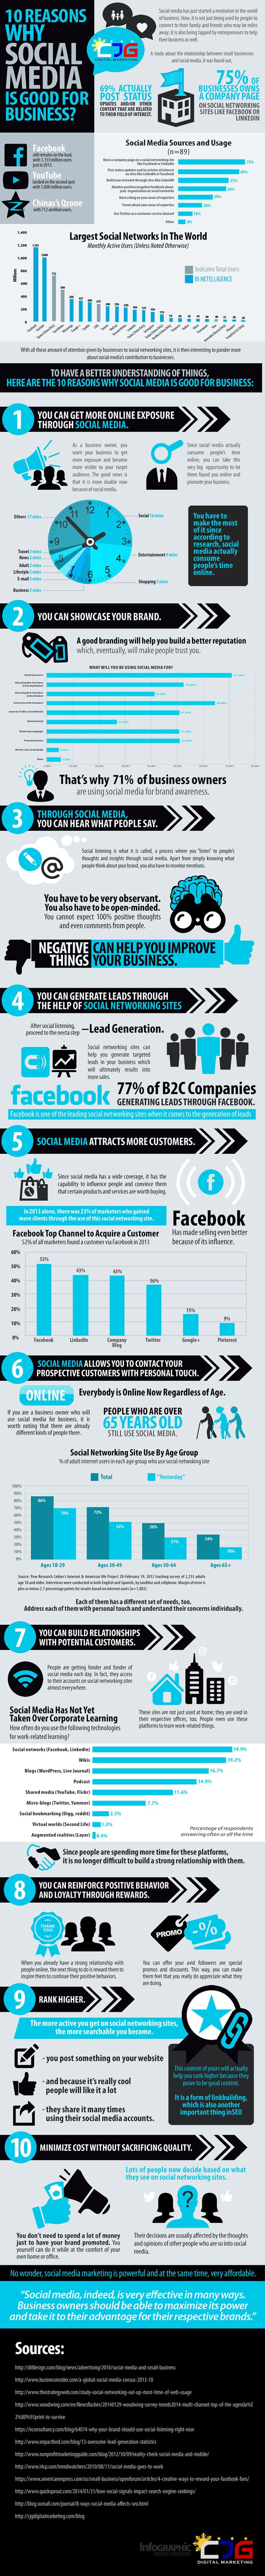 10 Reasons Why Social Media is Good for Business [INFOGRAPHIC]